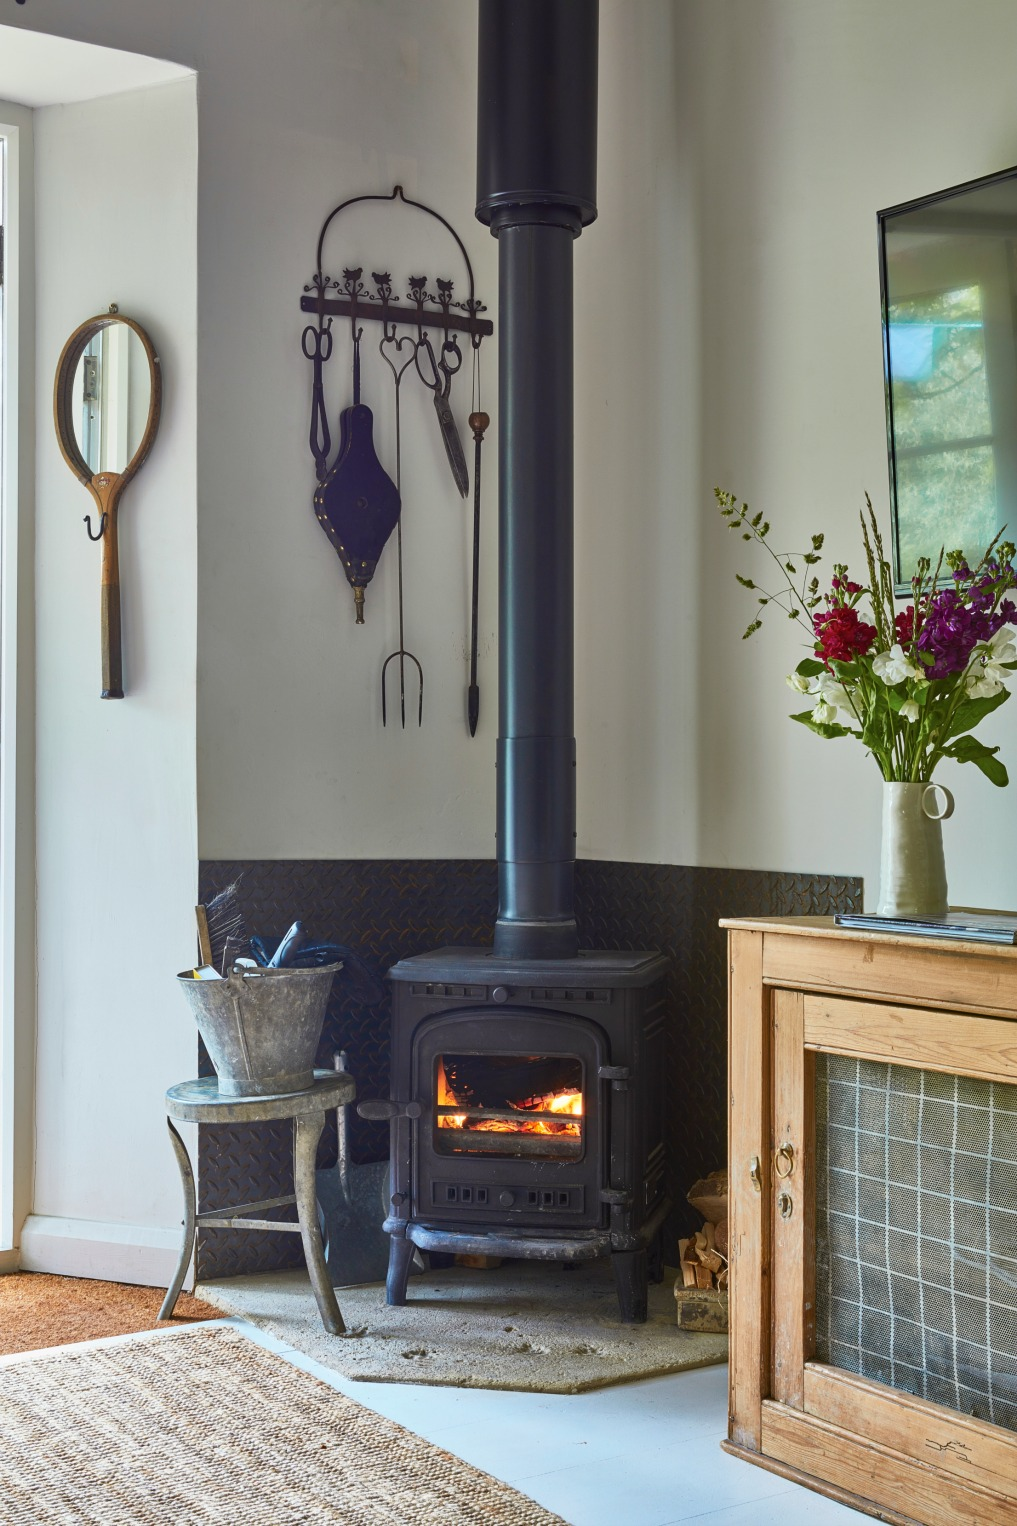 Wood burning stove in this charming cottage kellyelko.com